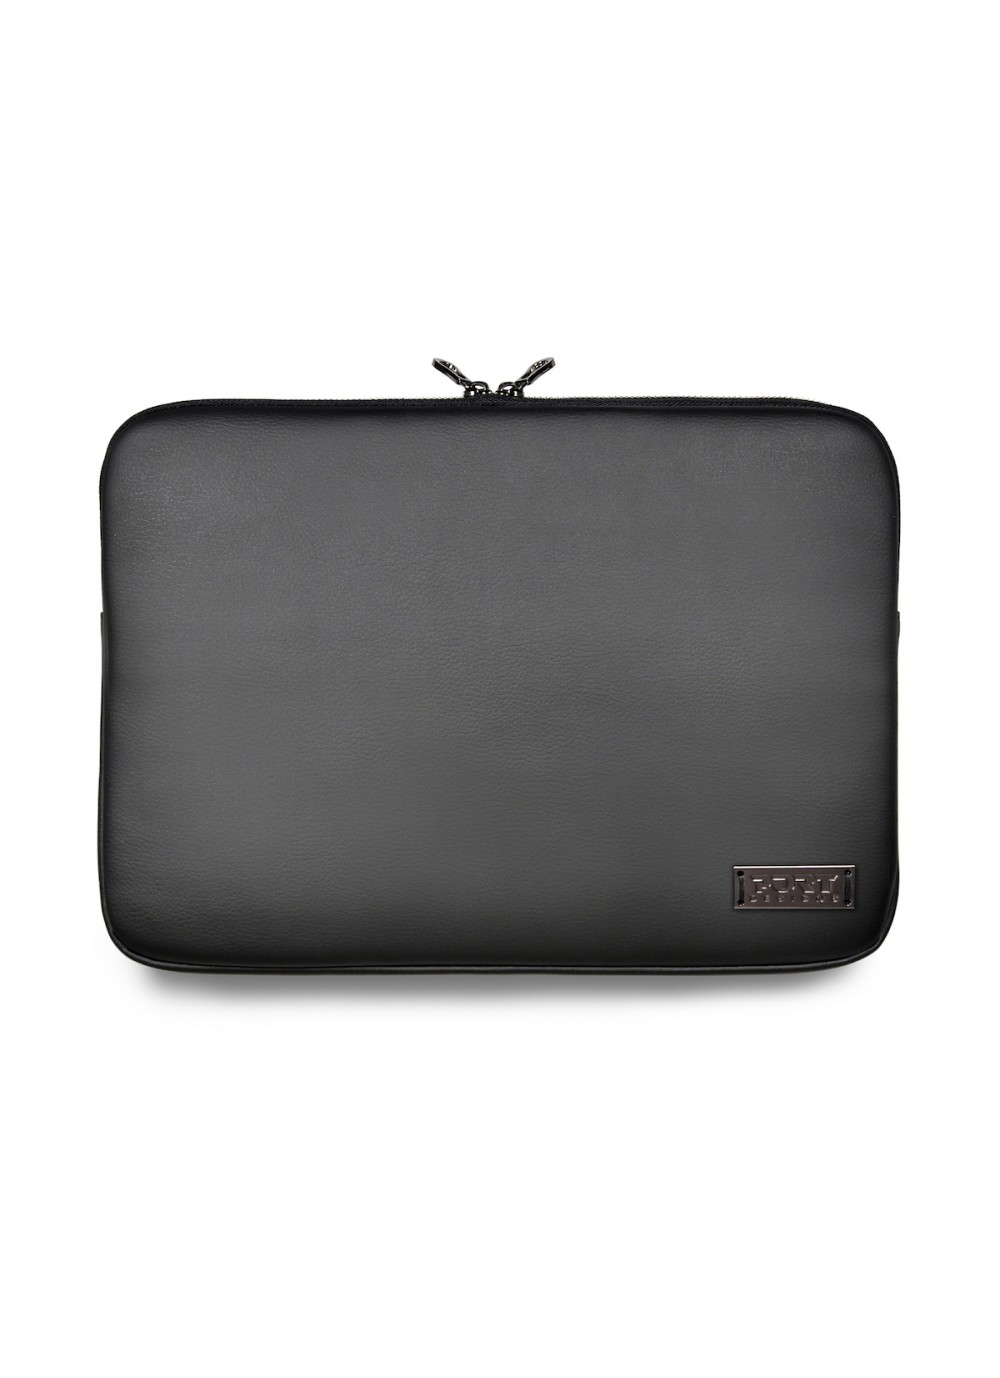 110308 port designs Zurich Sleeve Nmb Pro 13/ipad - NA01